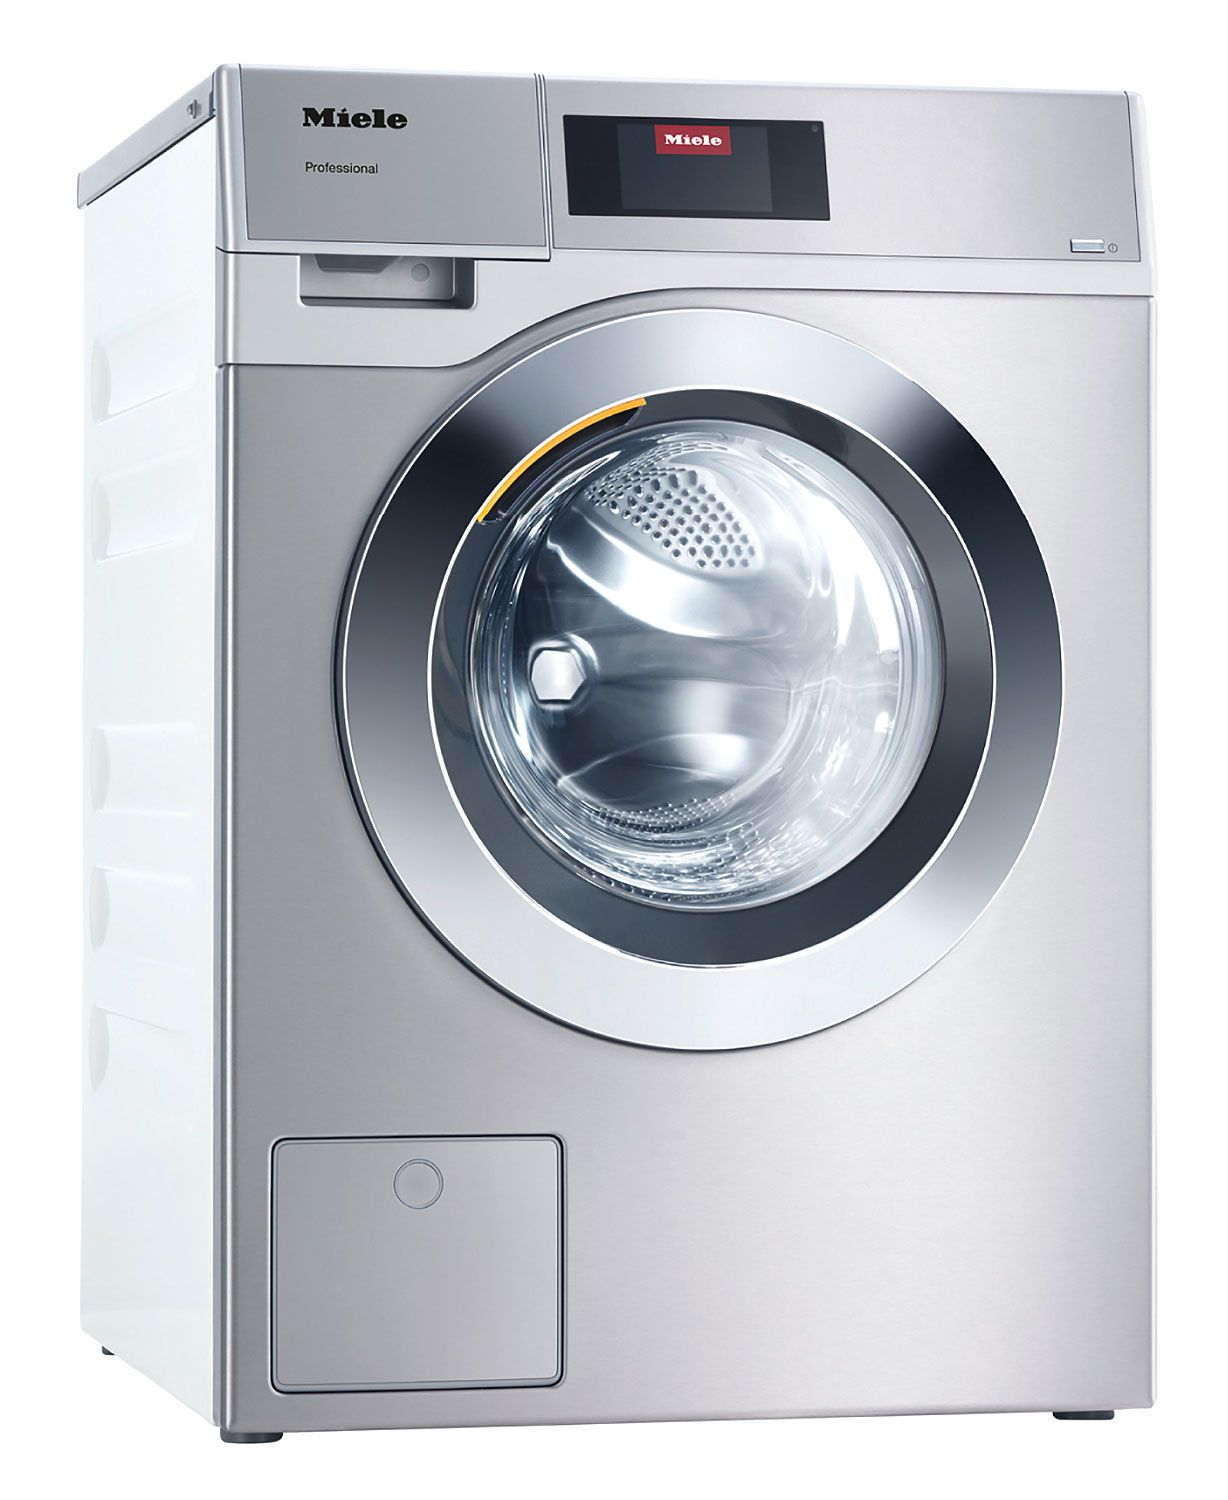 Miele 24 Stainless Steel Front Loading Washing Machine 11204470 Front Loading Washing Machine Washing Machine Washing